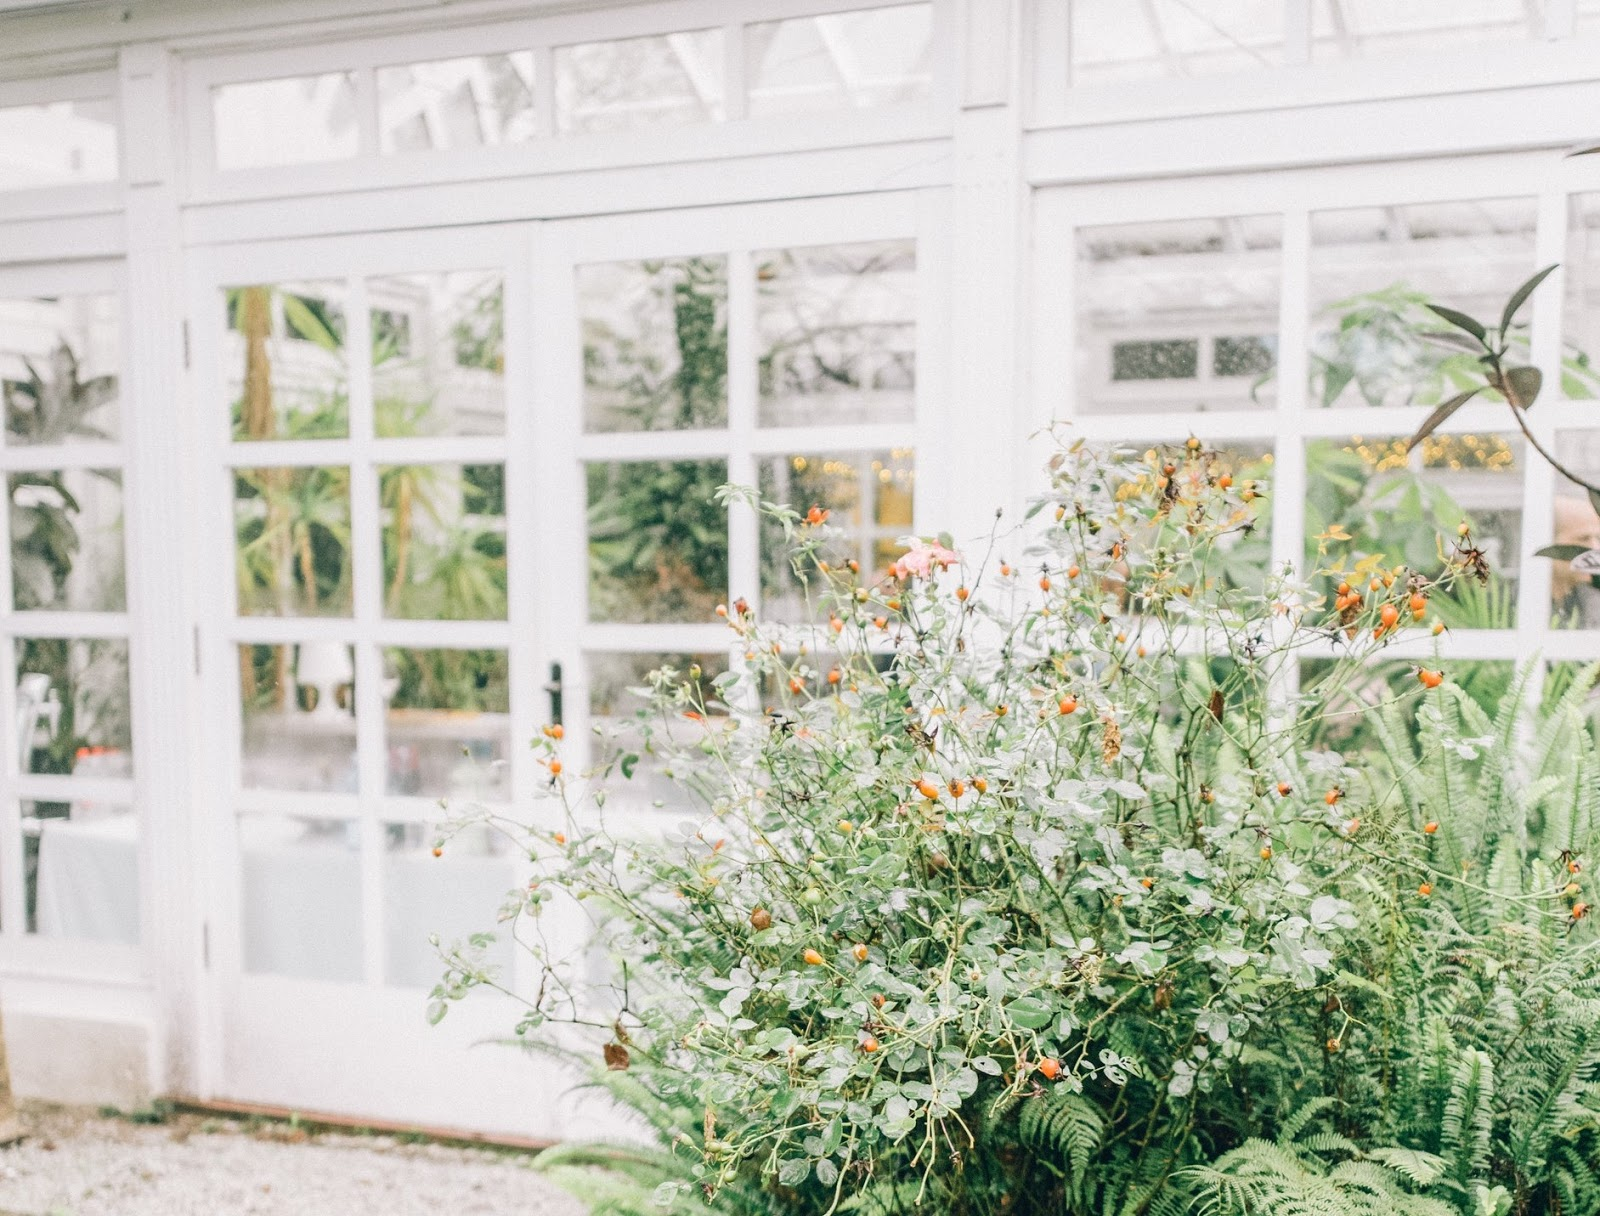 How much value can a conservatory add to my Exeter home?